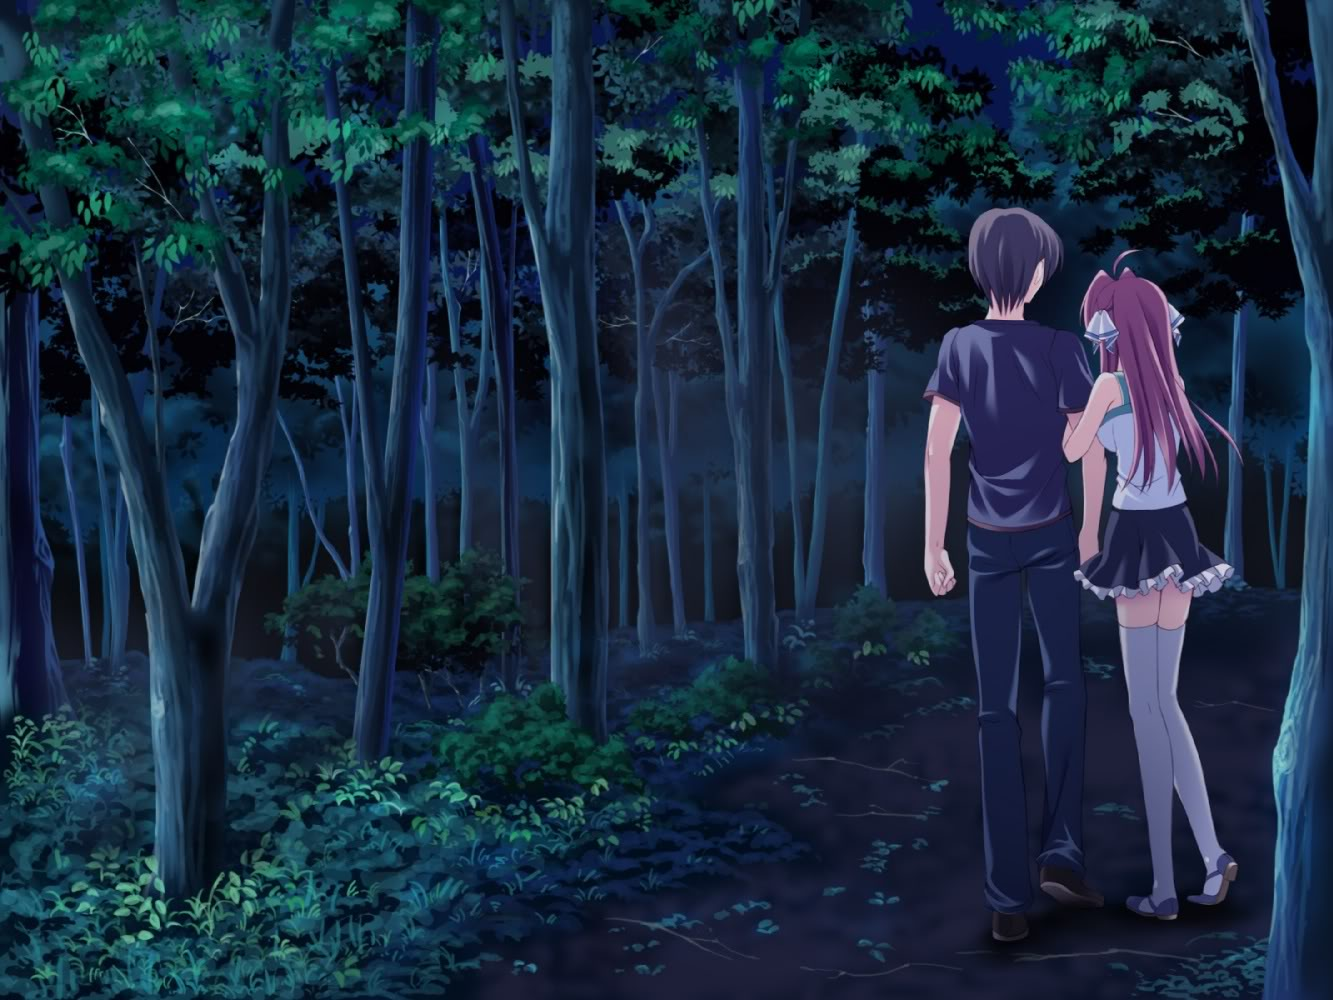 Anime Sweet couple Wallpaper 1333x1000 Download wallpapers page